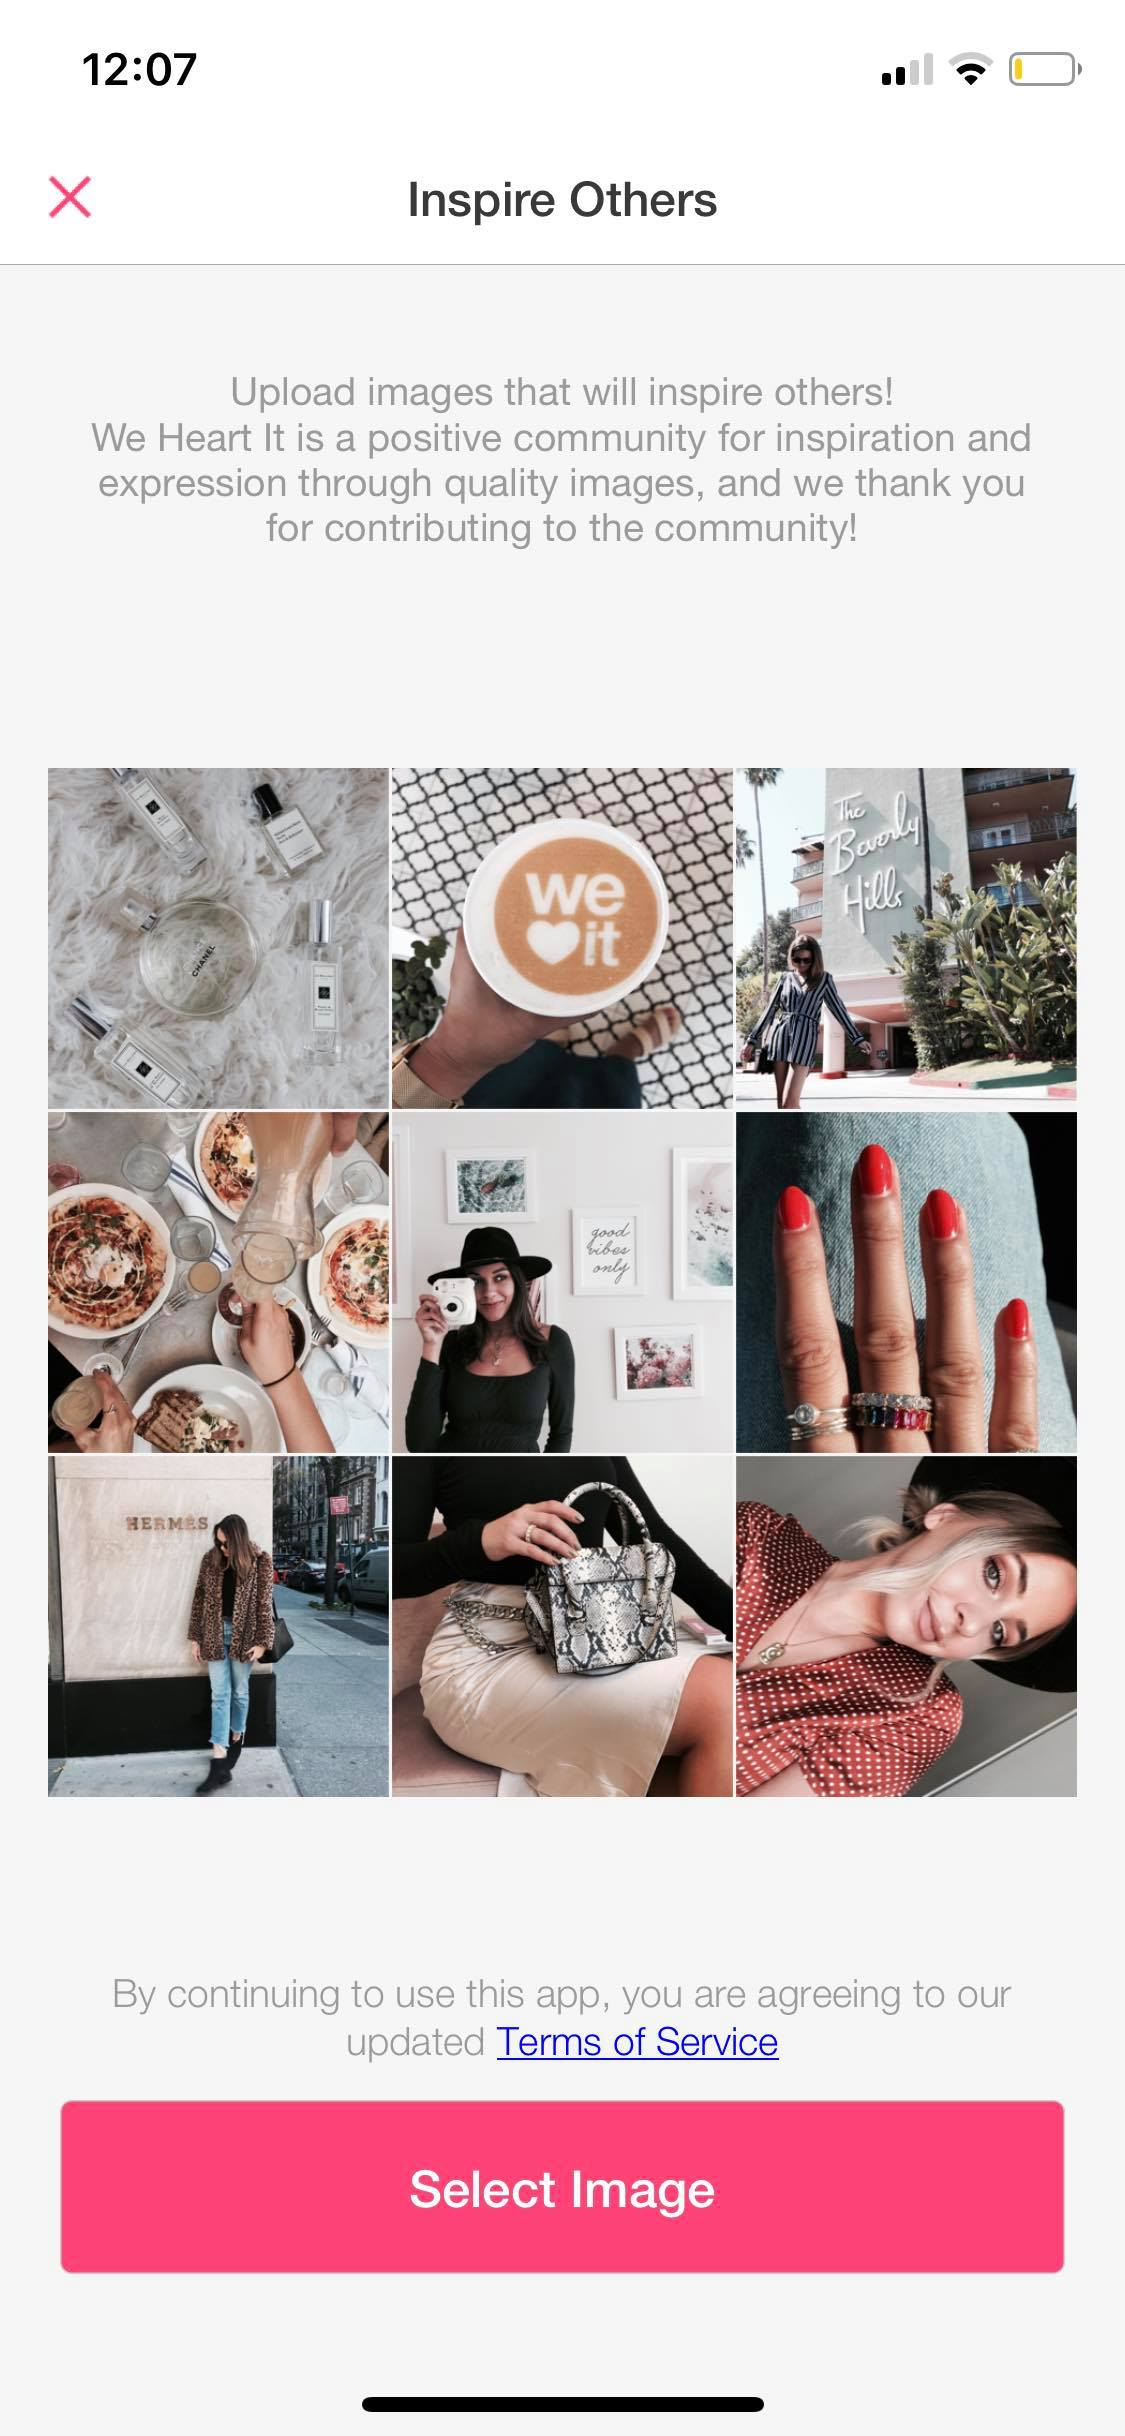 Inspire Others on iOS by We Heart It